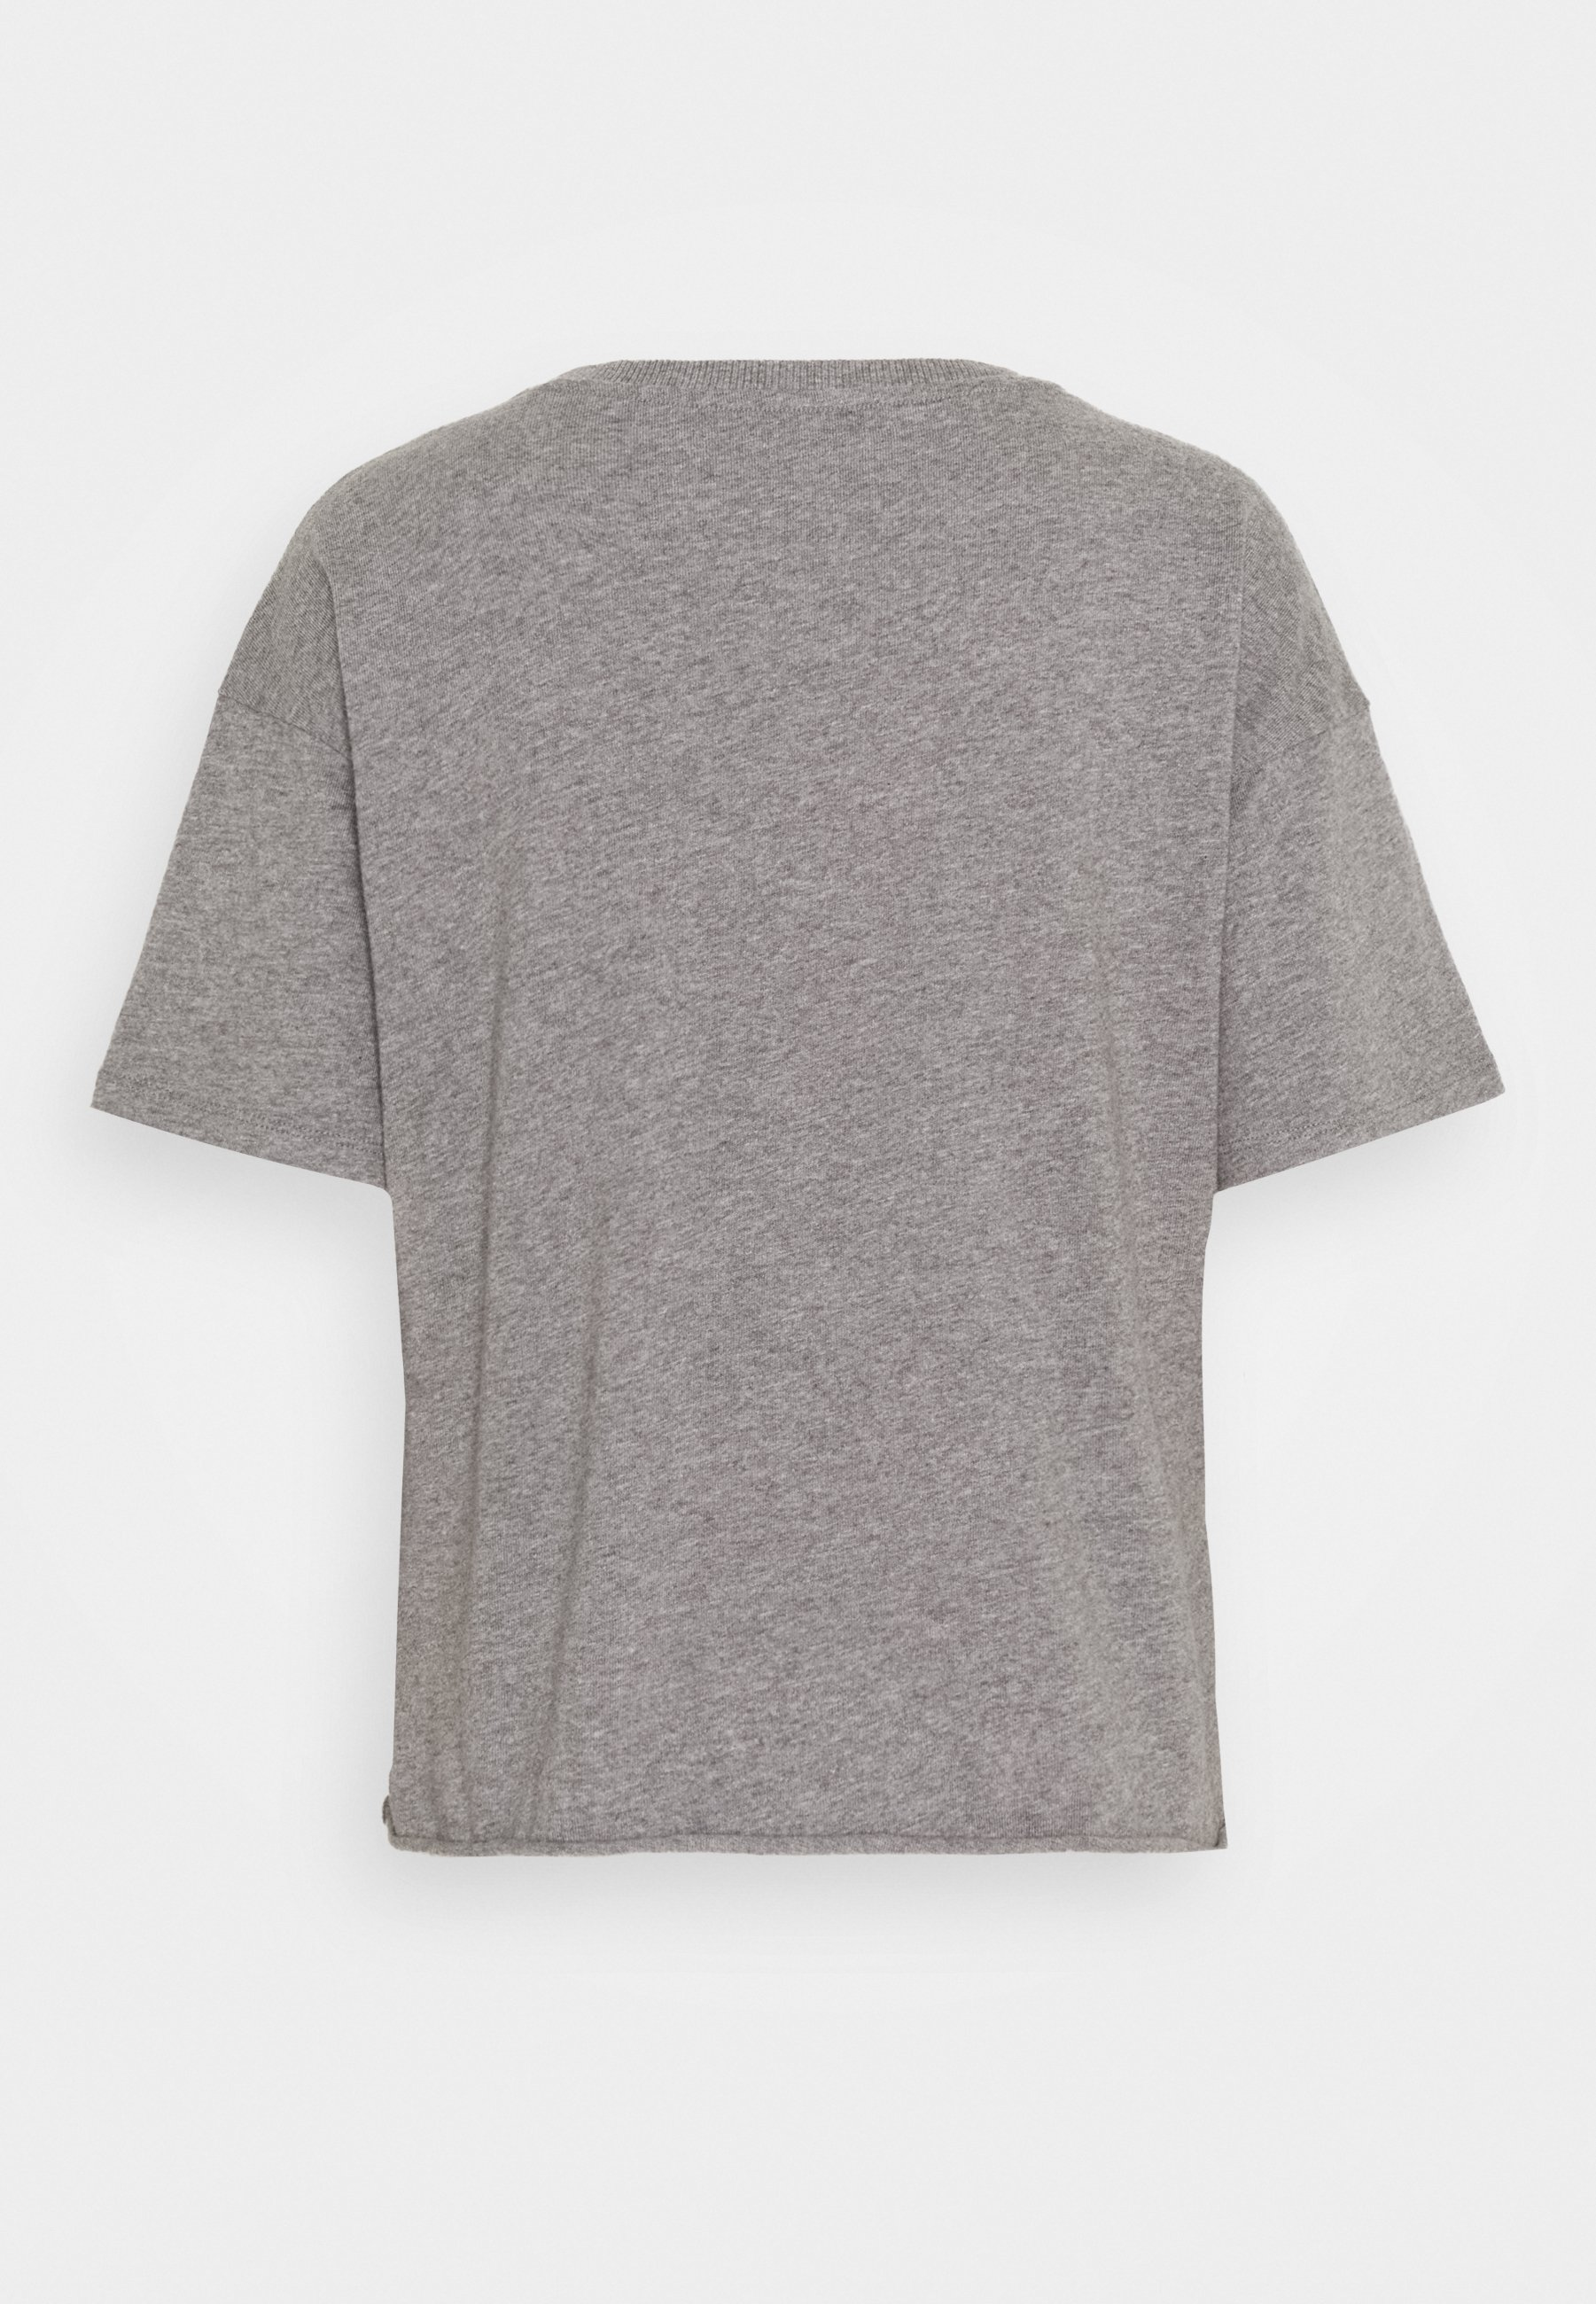 American Eagle Branded Brights Santa Monica Tee - T-shirts Med Print Heather Gray/grå Denim